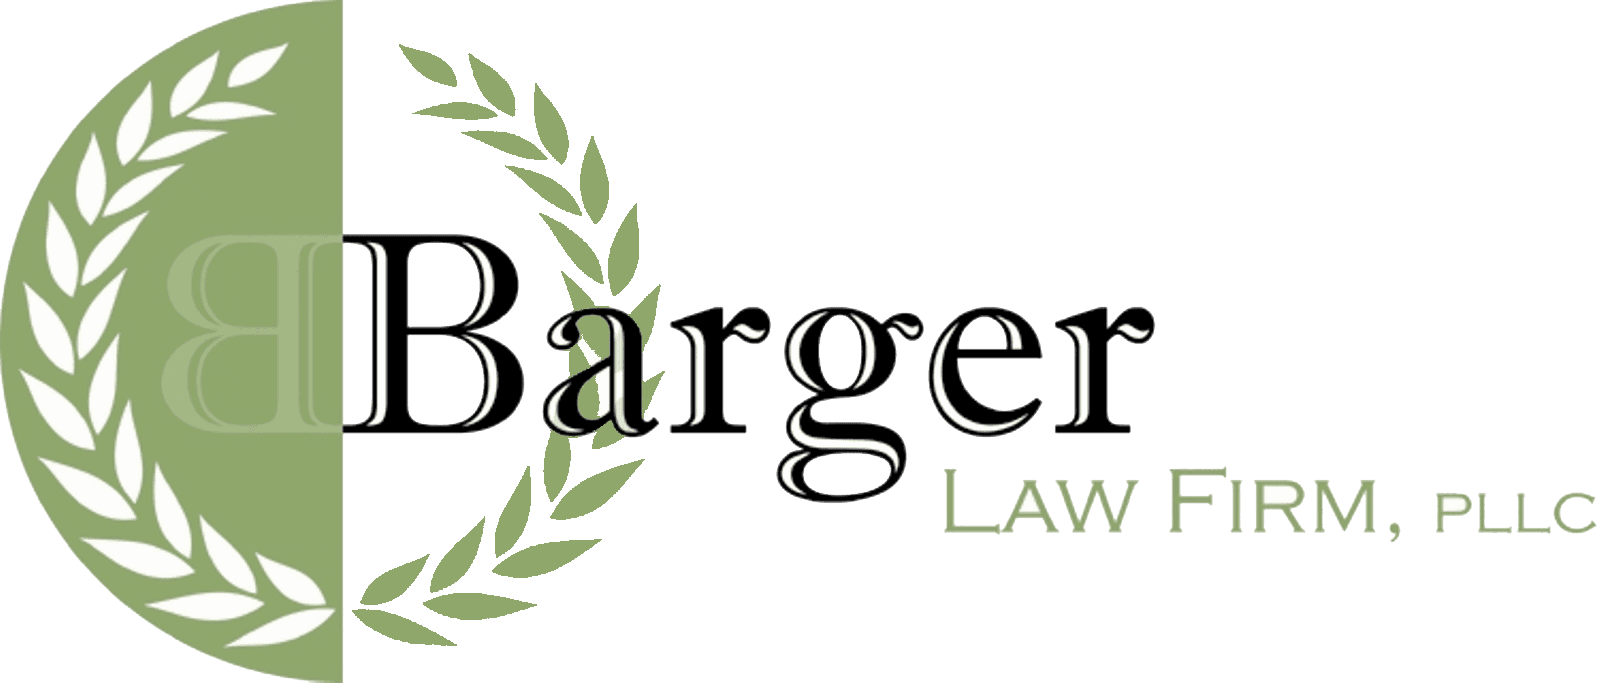 The Barger Law Firm, PLLC - Logo